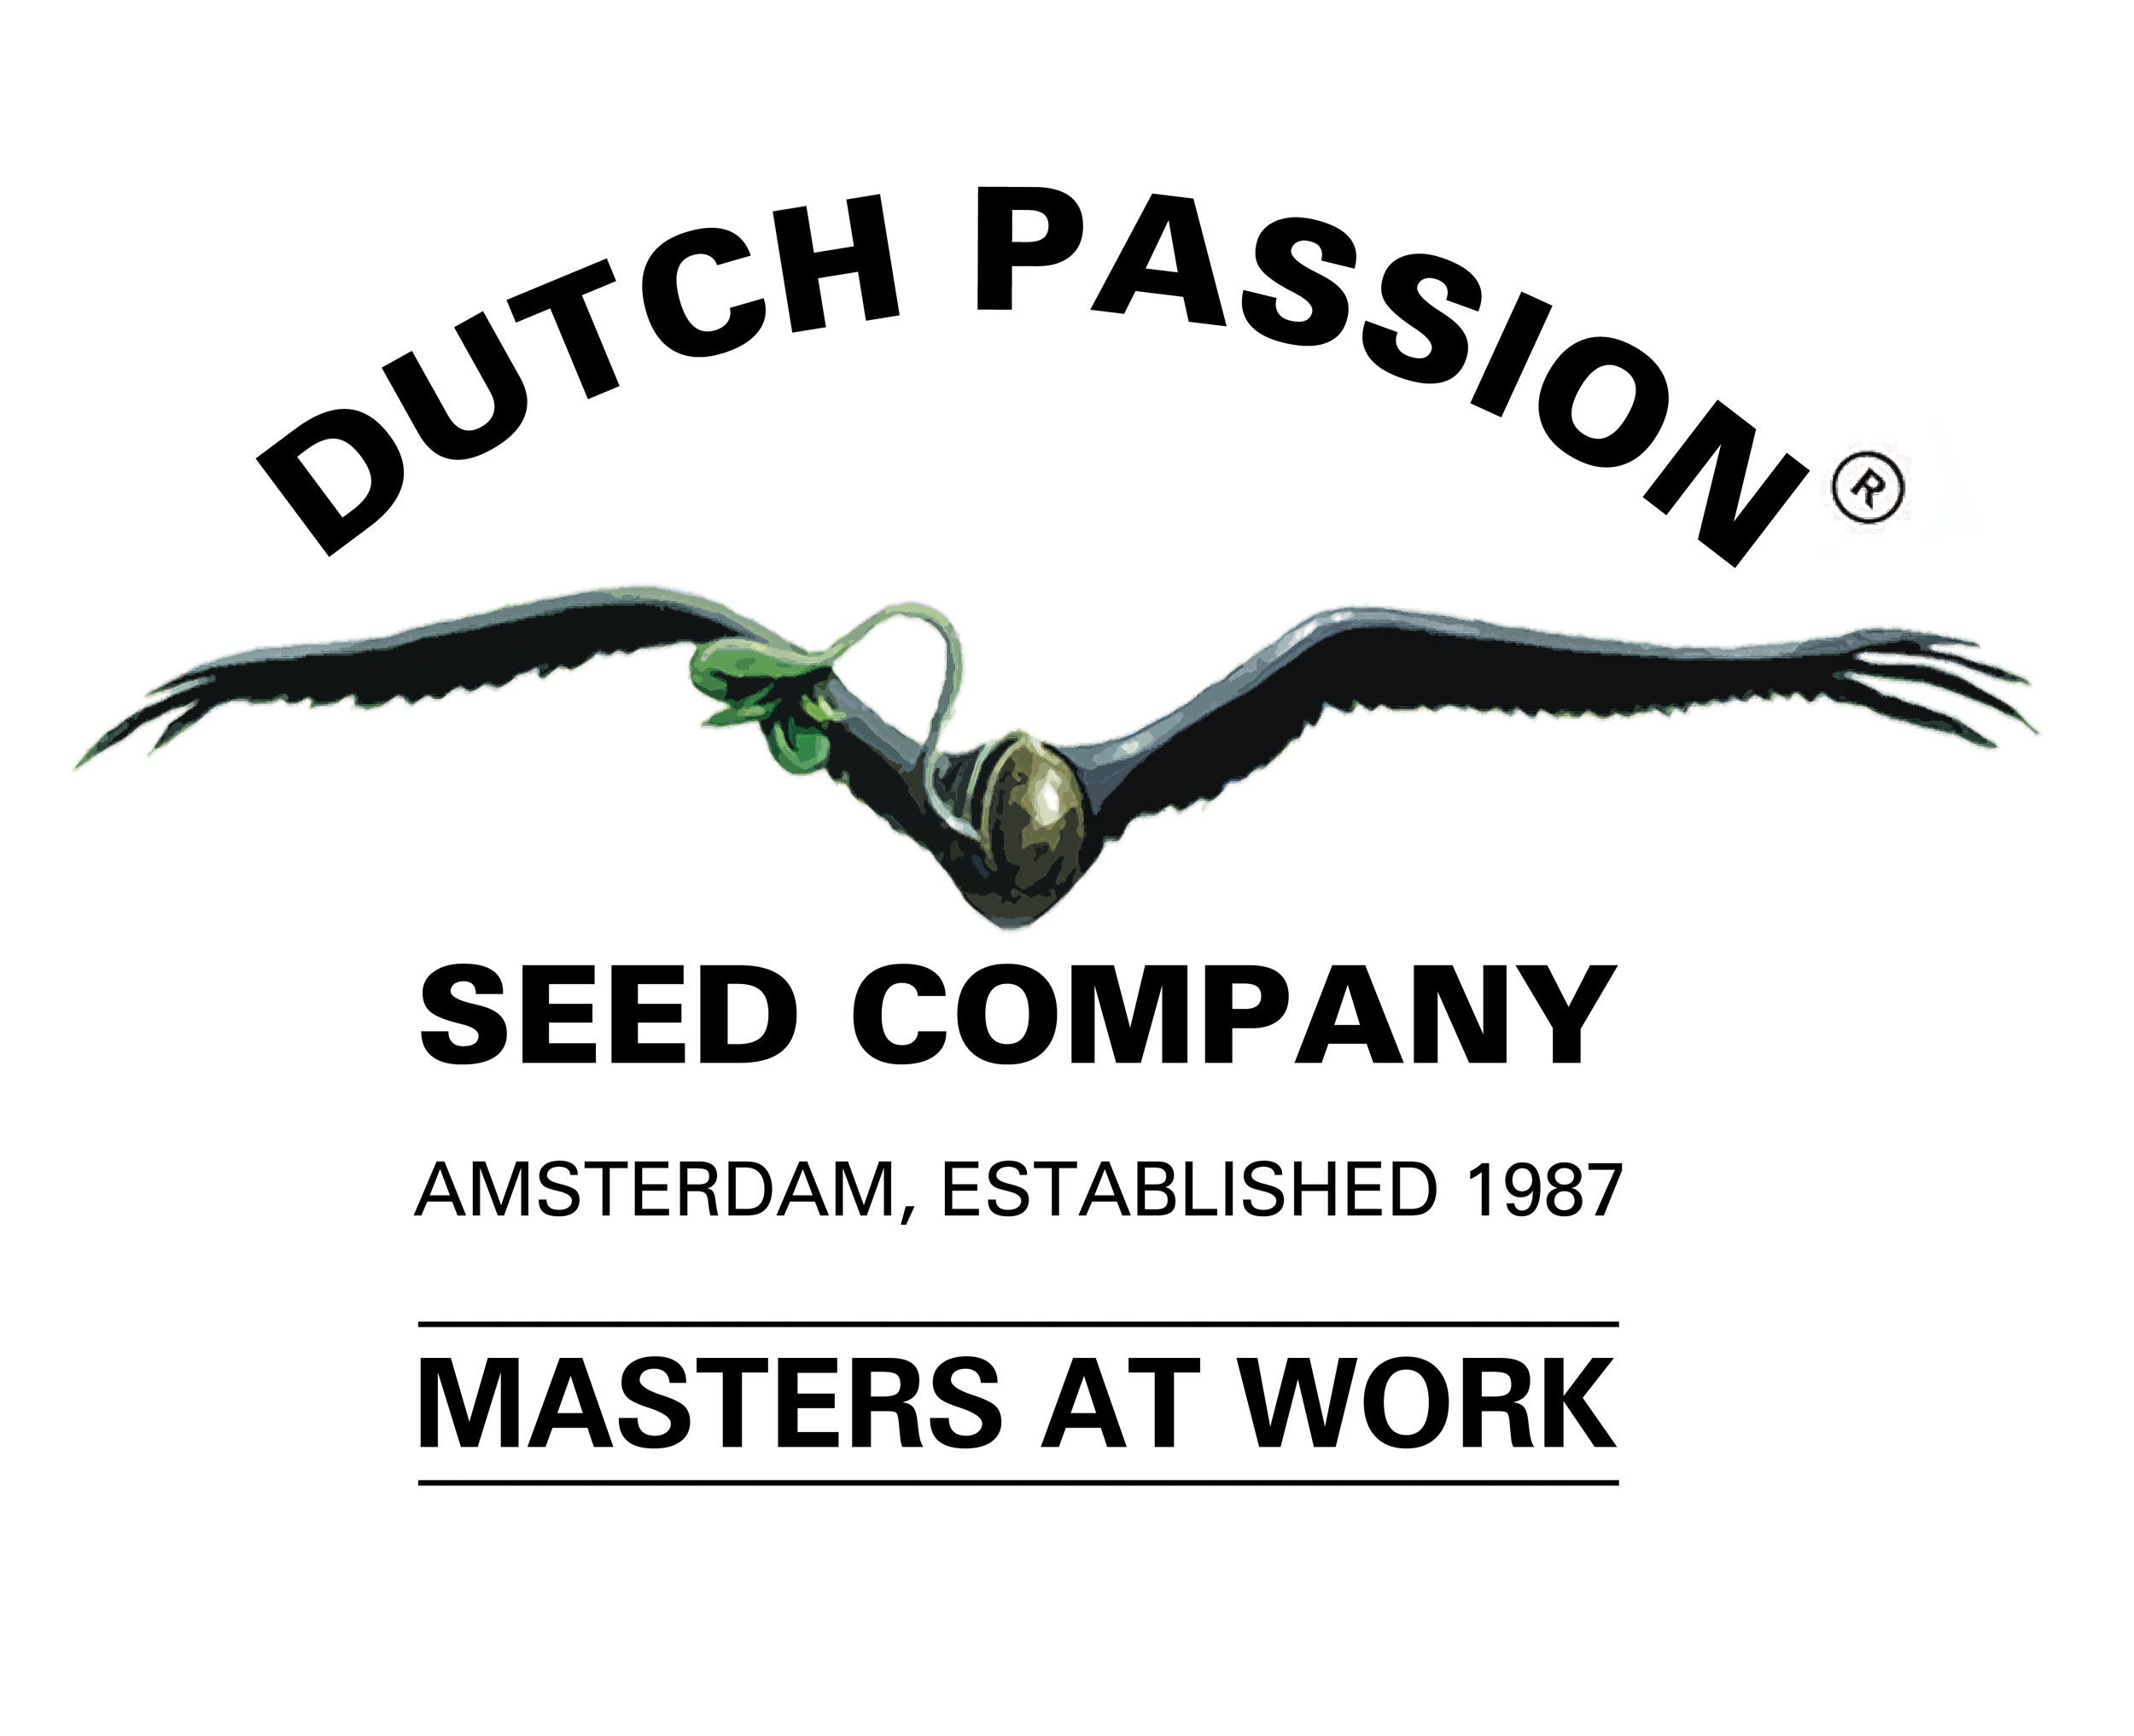 Dutch Passion High Potency Auto Mix TD, AU, ACJ 9ks feminizovaná